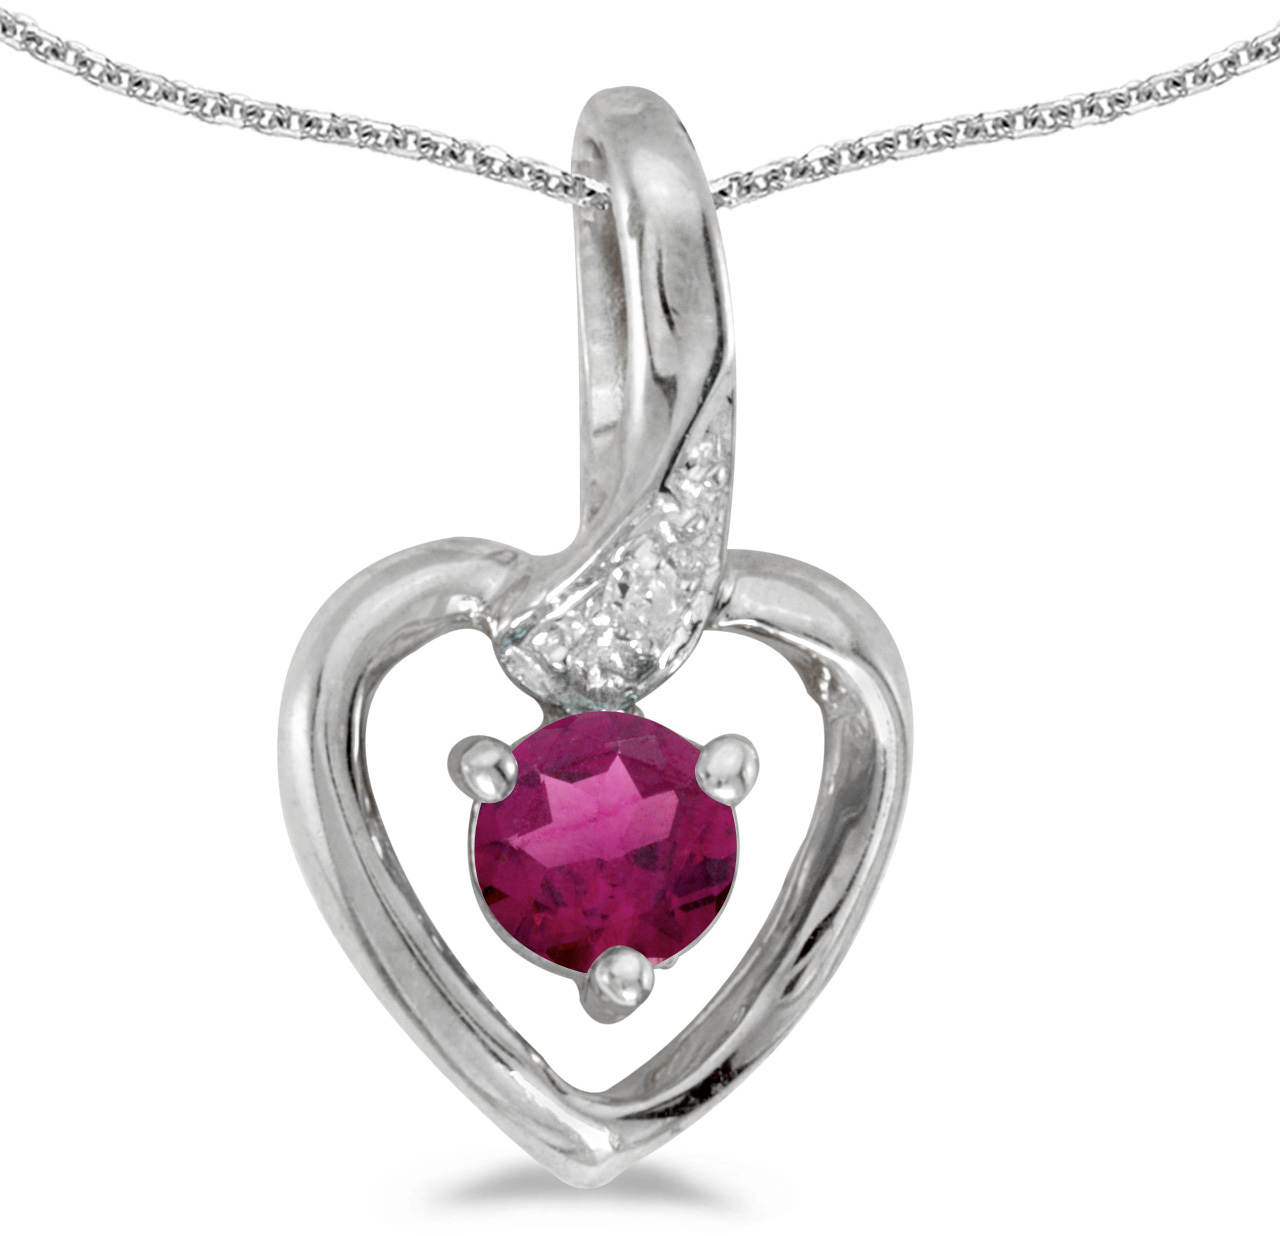 10k White Gold Round Rhodolite Garnet And Diamond Heart Pendant (Chain NOT included)